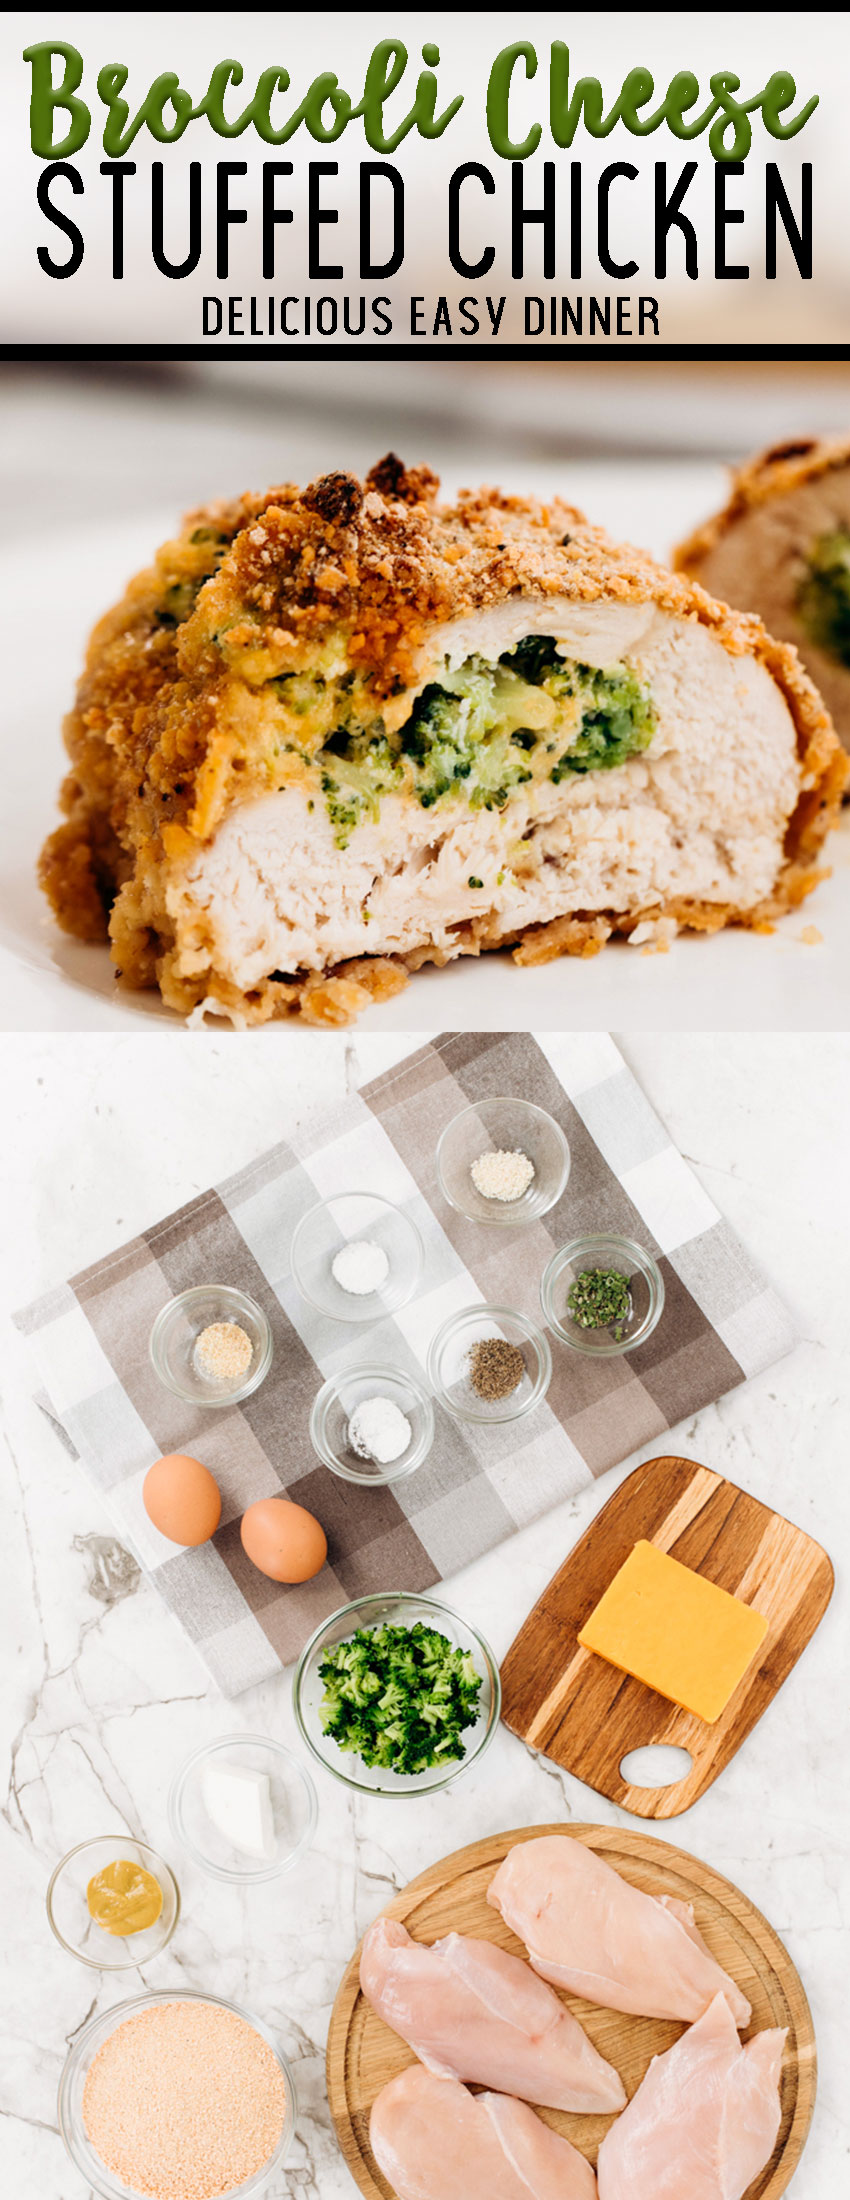 Broccoli cheese stuffed chicken breast and all the ingredients needed to make this easy dinner